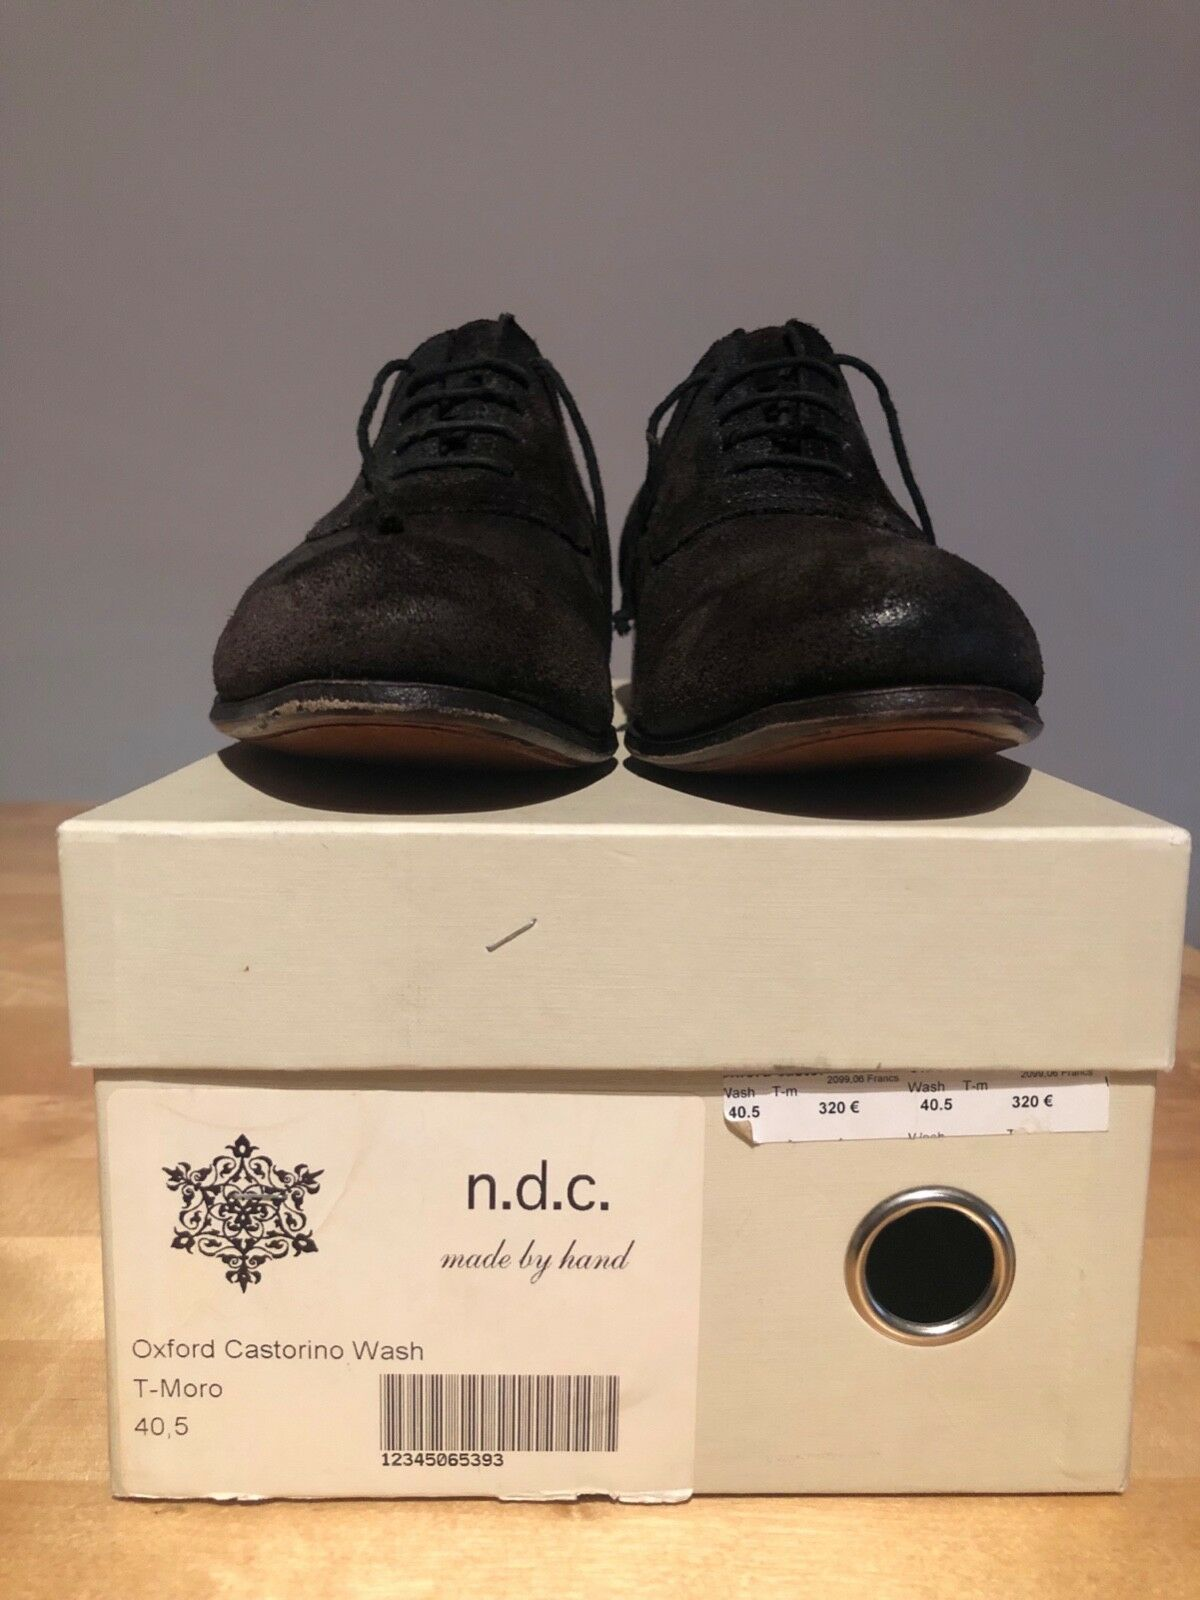 Chaussure N.D.C made by by by hand Dimensione 40,5 71566a